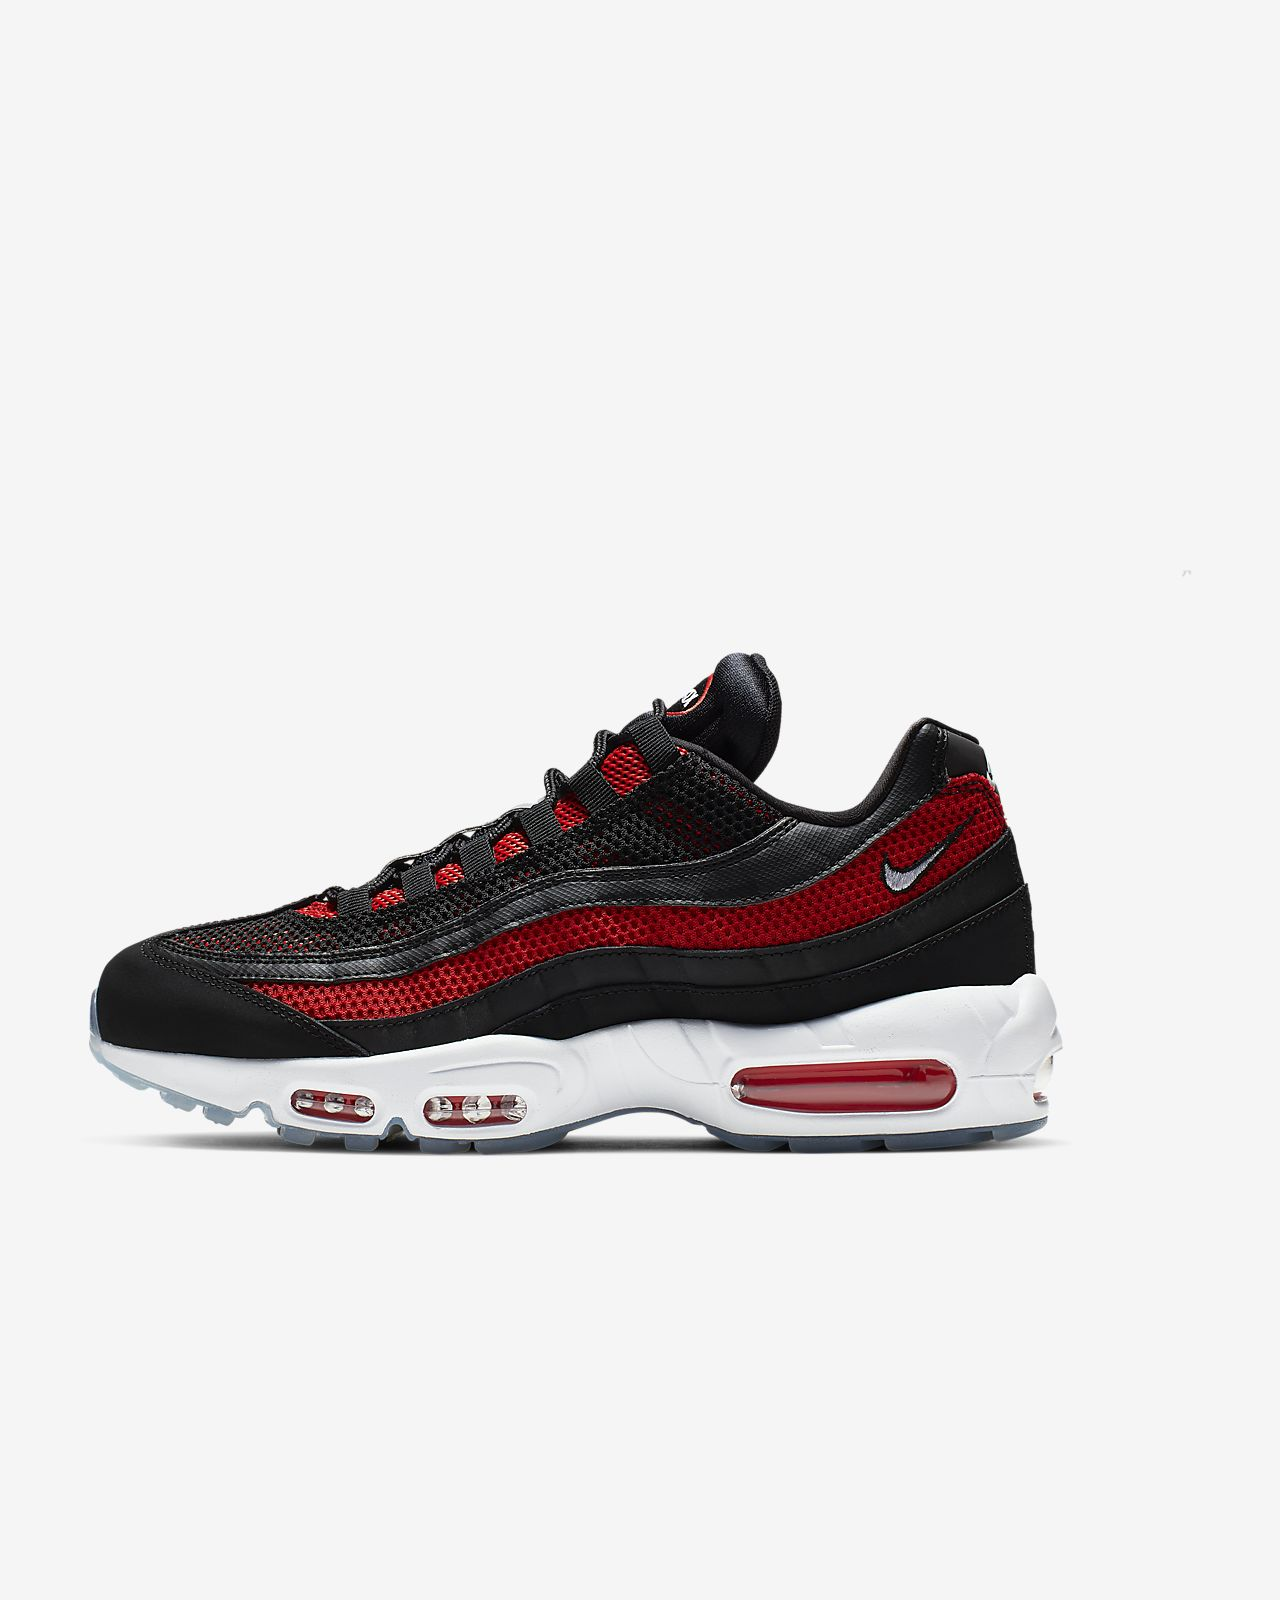 7a2fd6e7 Low Resolution Мужские кроссовки Nike Air Max 95 Essential Мужские  кроссовки Nike Air Max 95 Essential